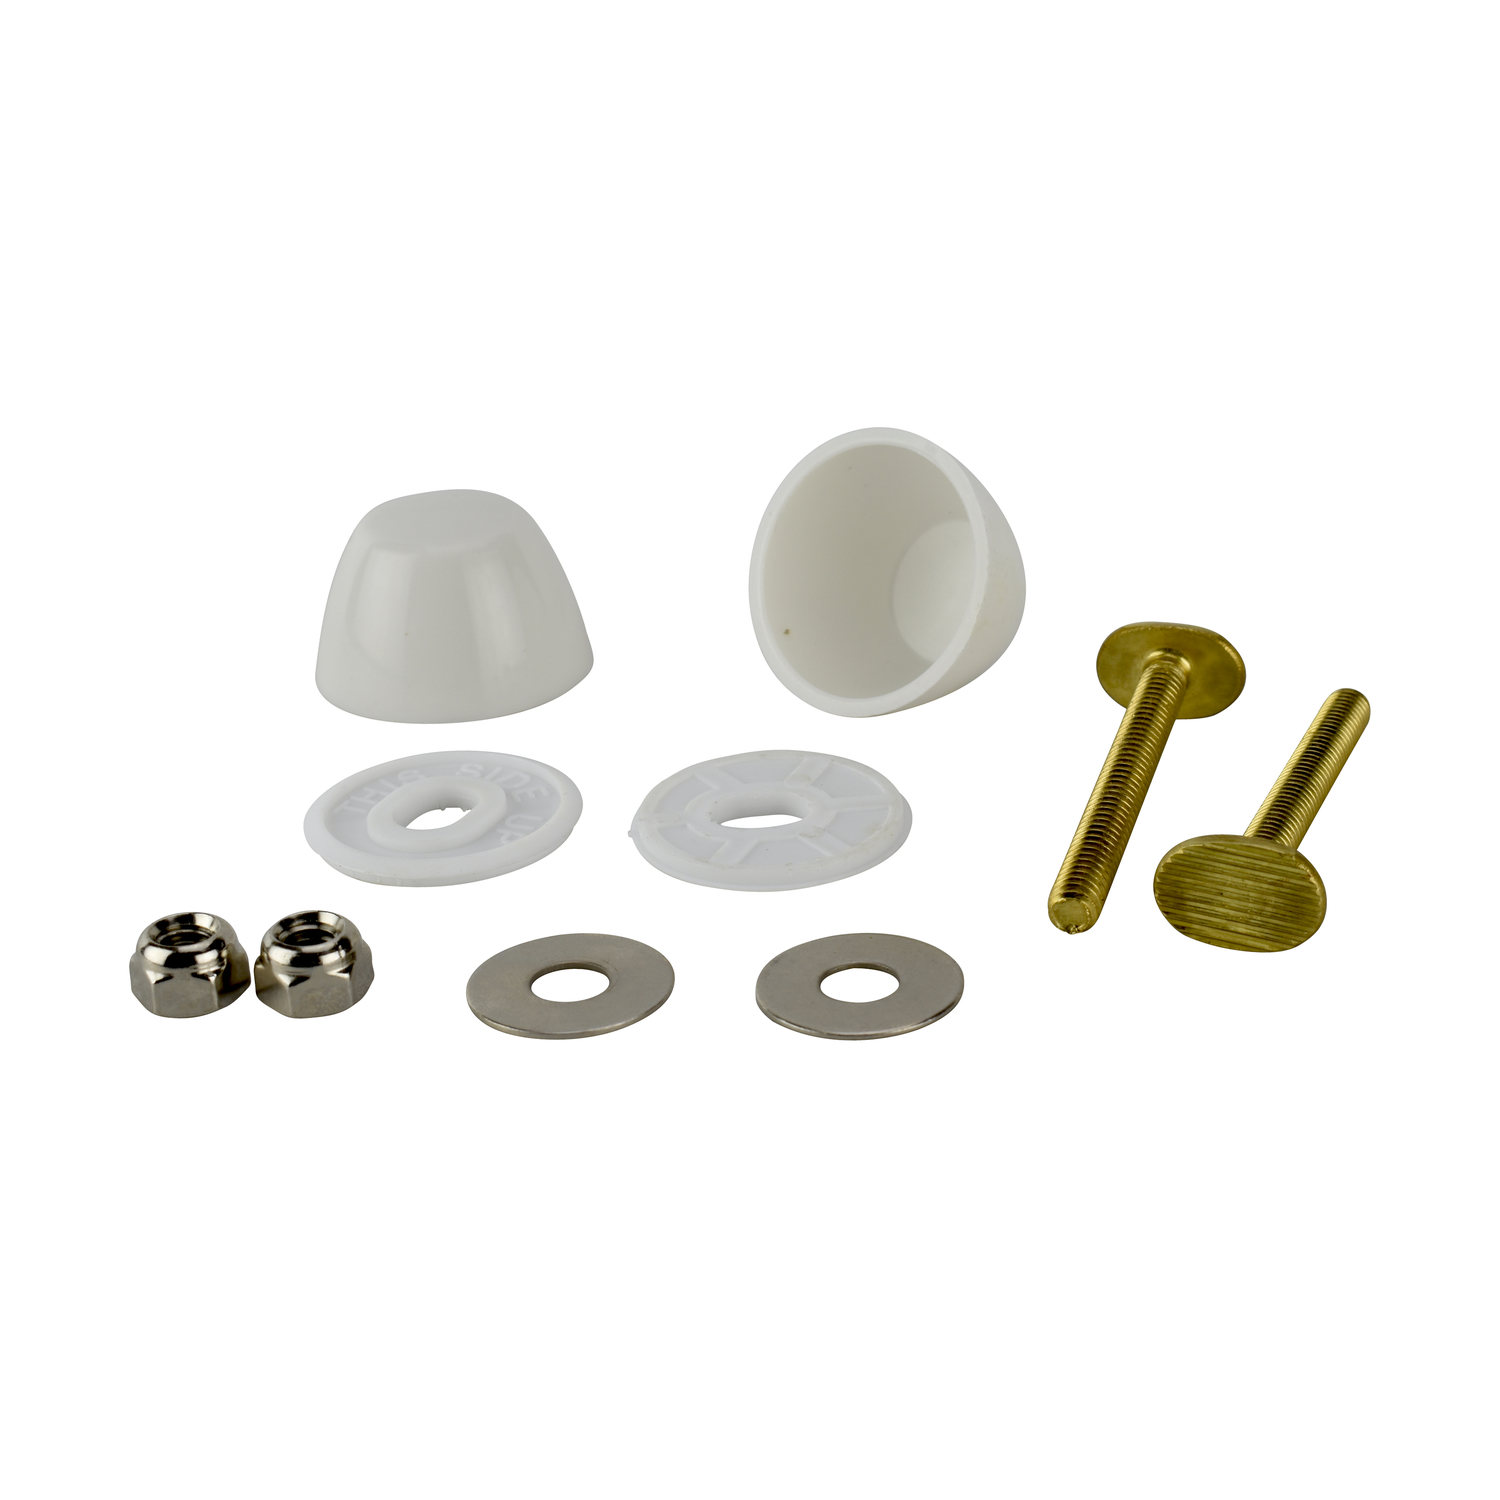 Ace  Toilet Bolt Set  1/4 in. H x 2-1/4 in. L Brass/Plastic